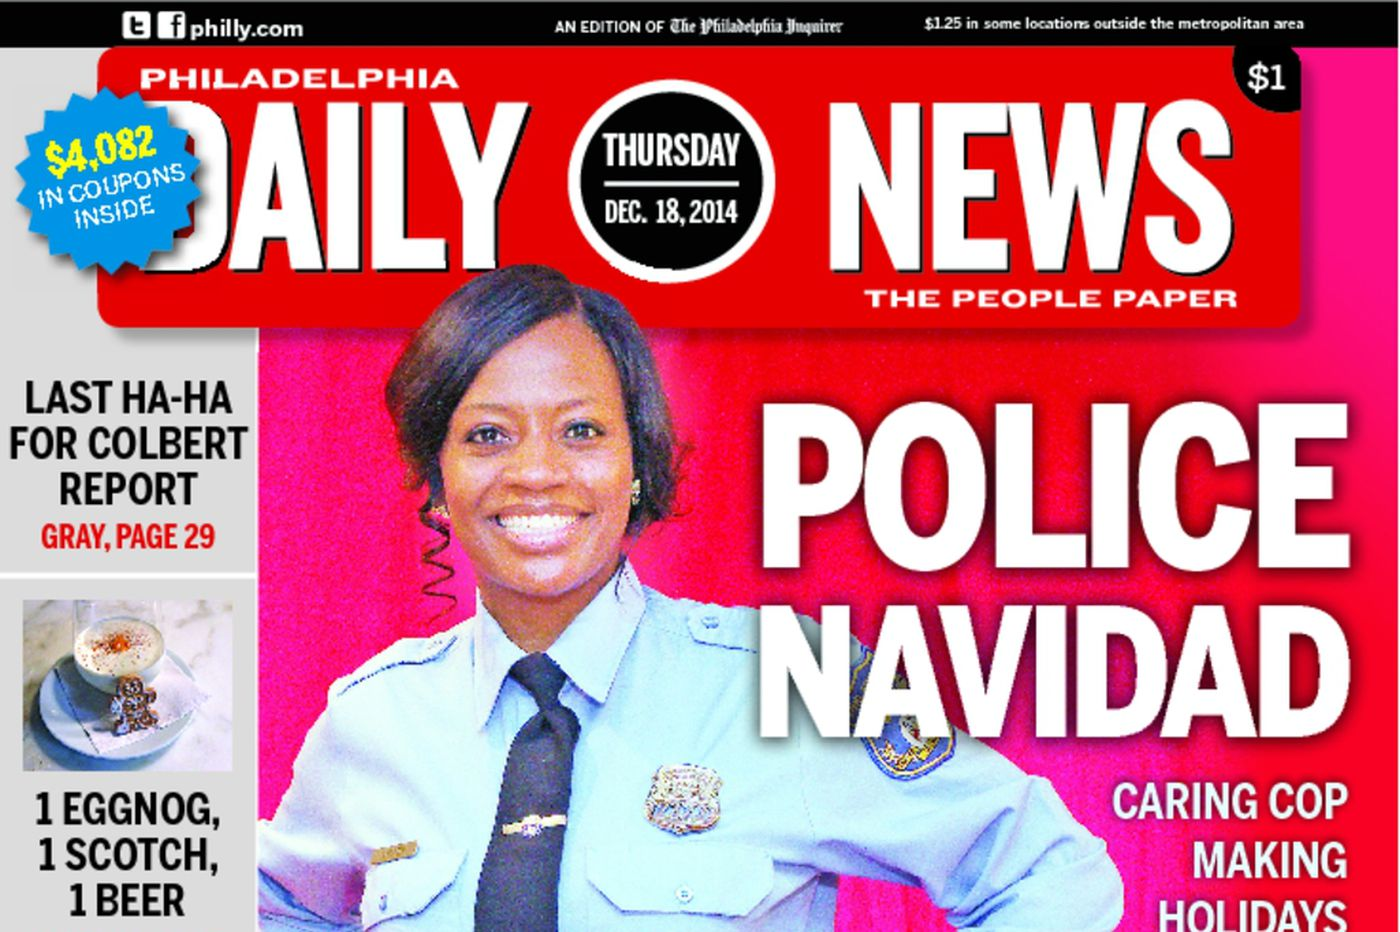 Dailynews Monthly Covers 12/18/14